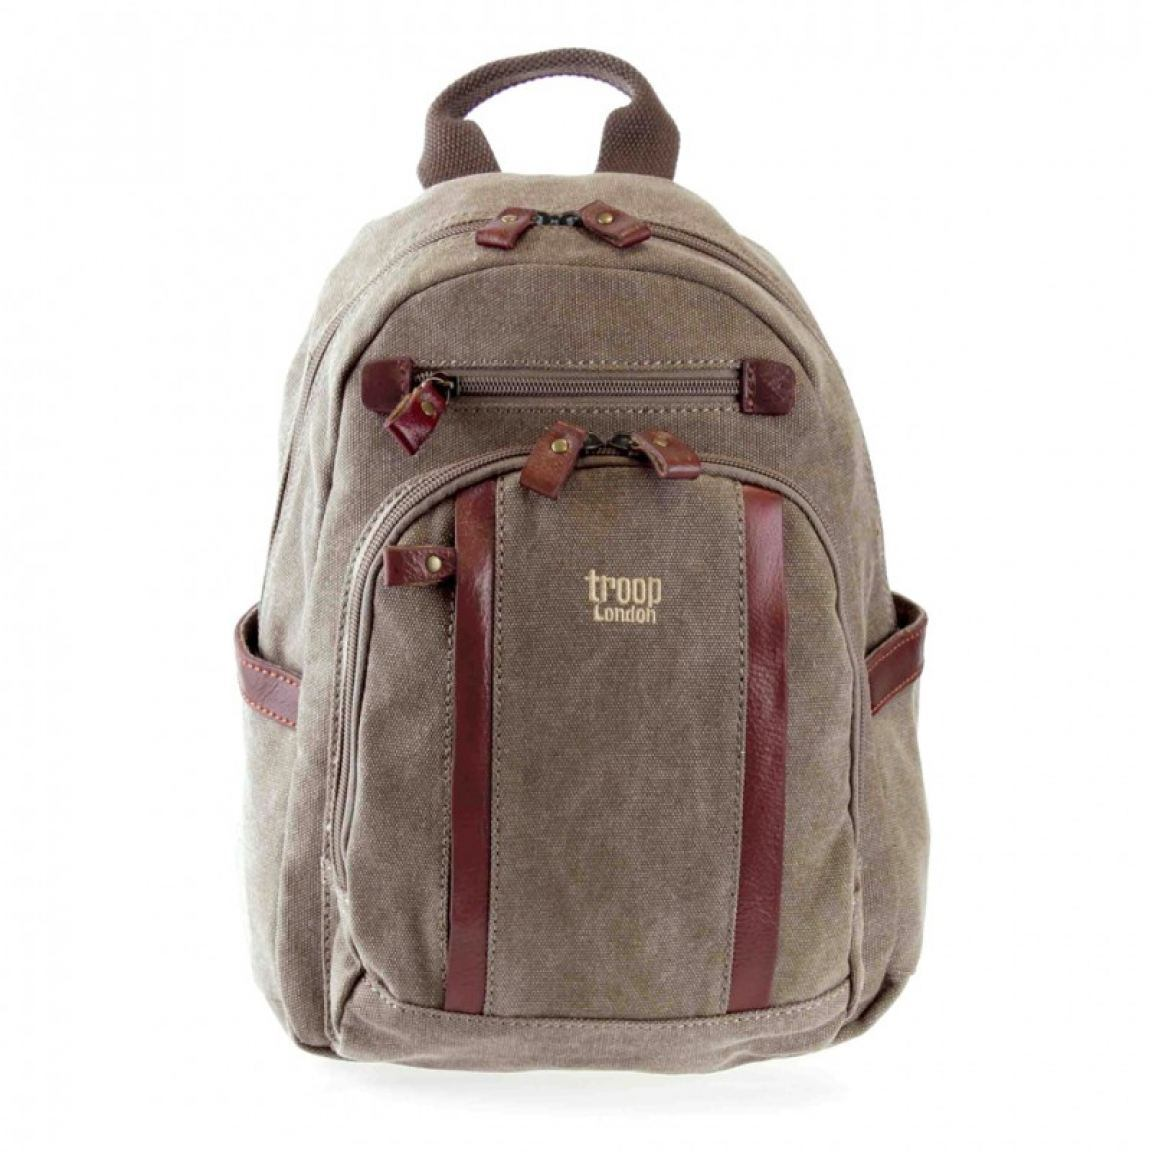 troop Cityrucksack canvas mit Leder brown